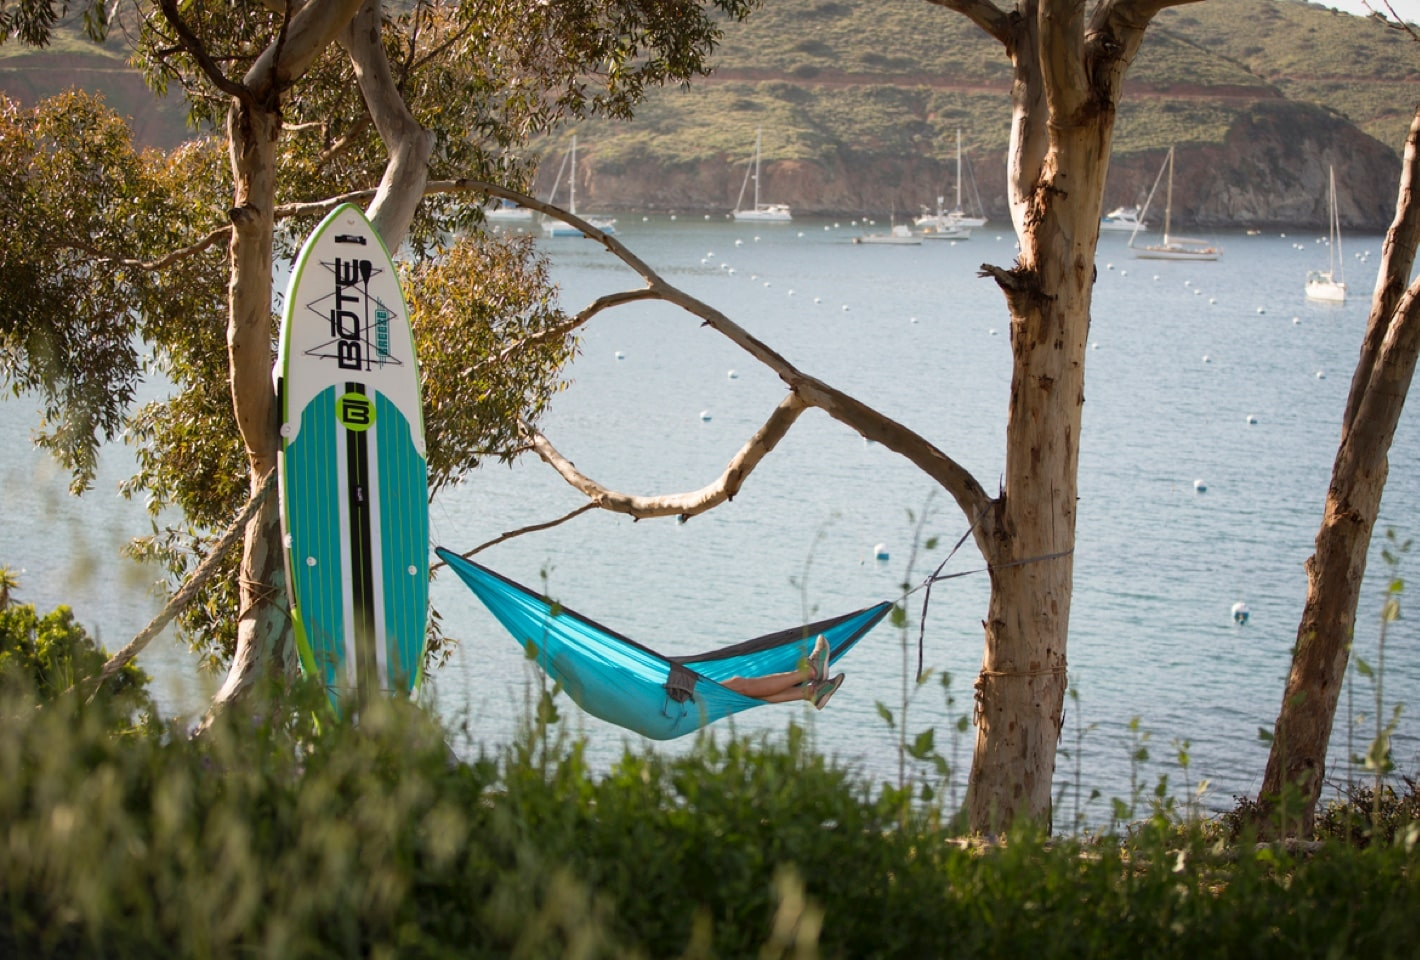 Erin lounging in hammock next to her BOTE inflatable paddle board